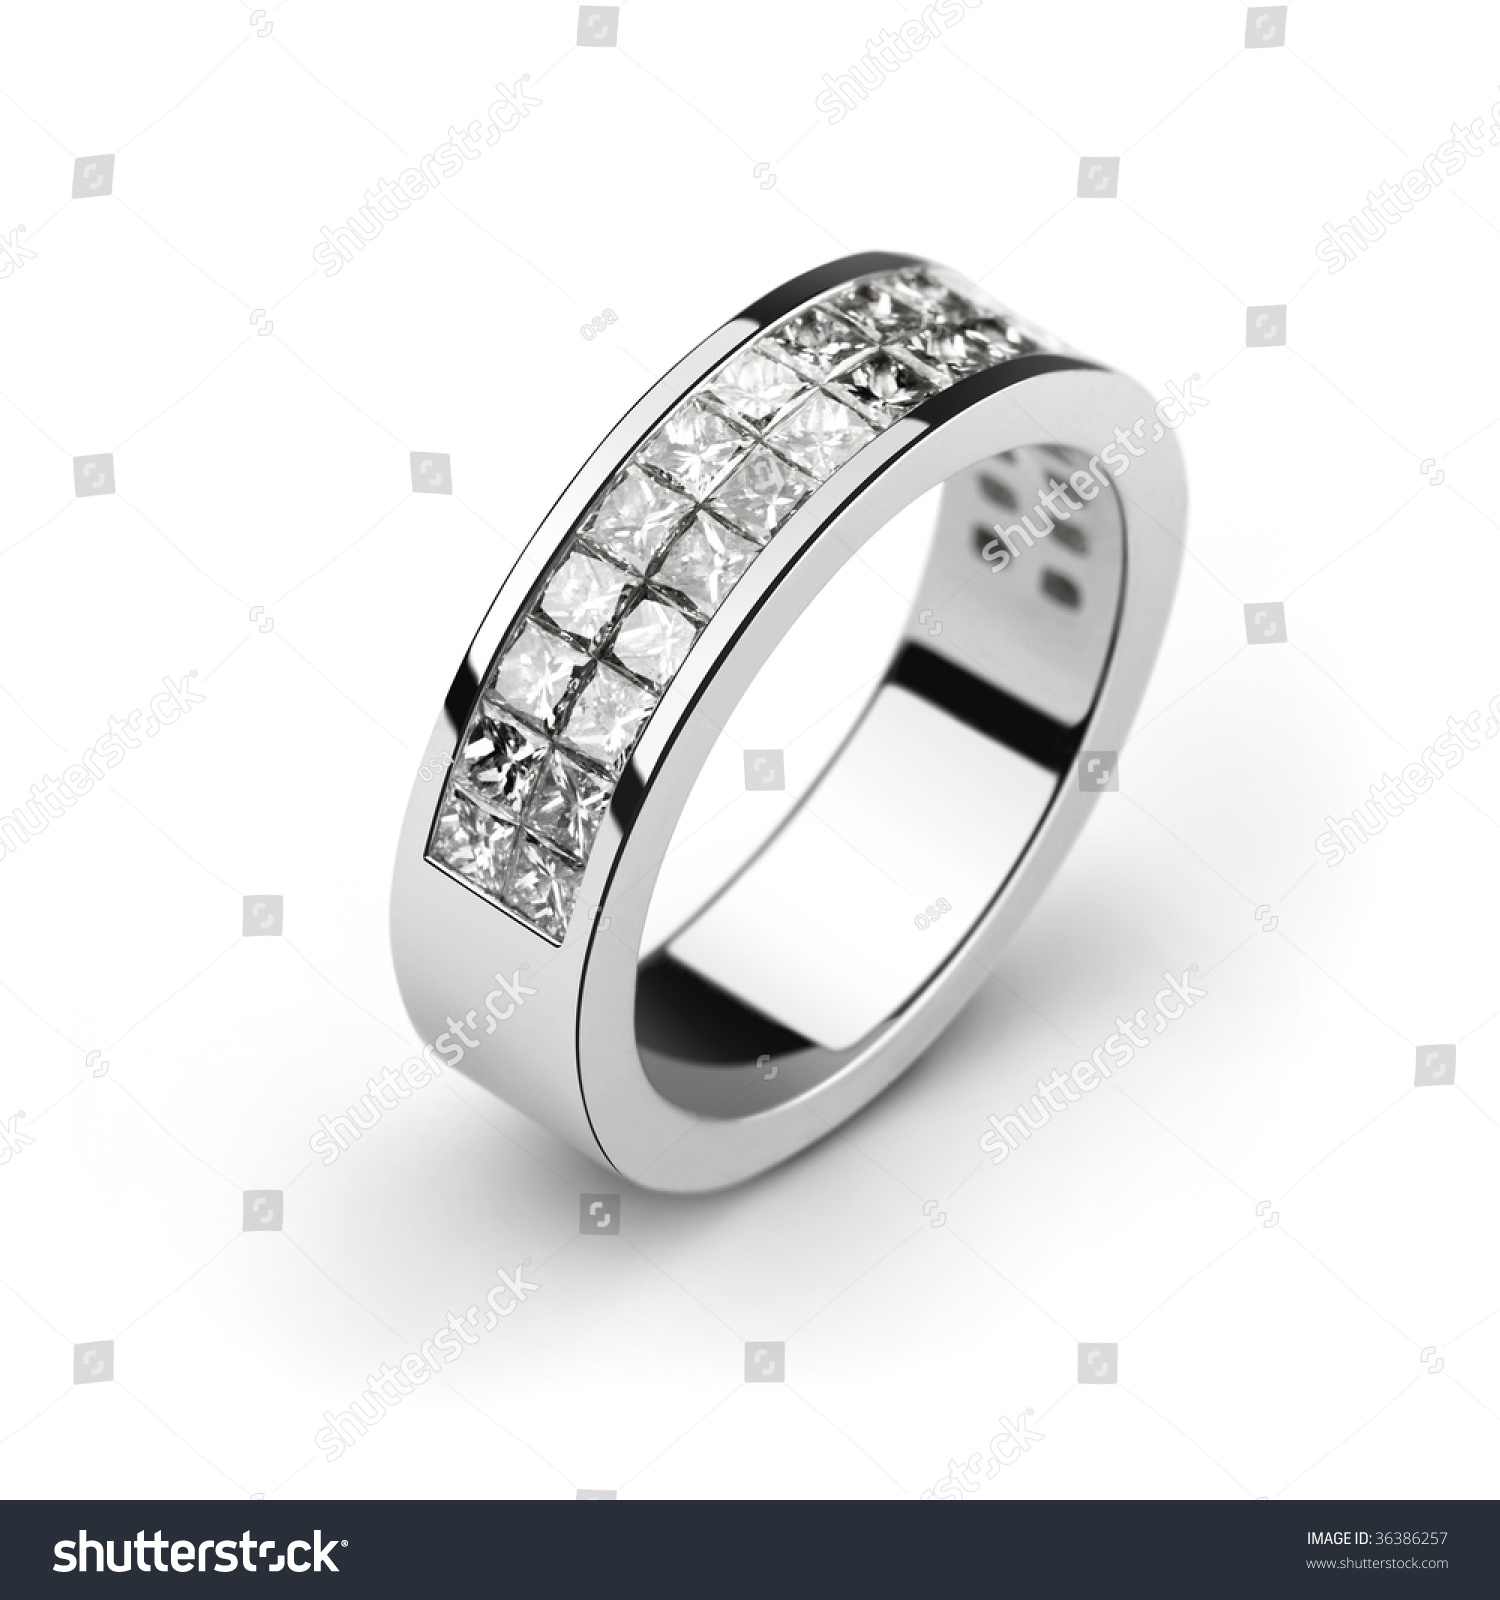 photo of white gold wedding ring with white diamonds cut